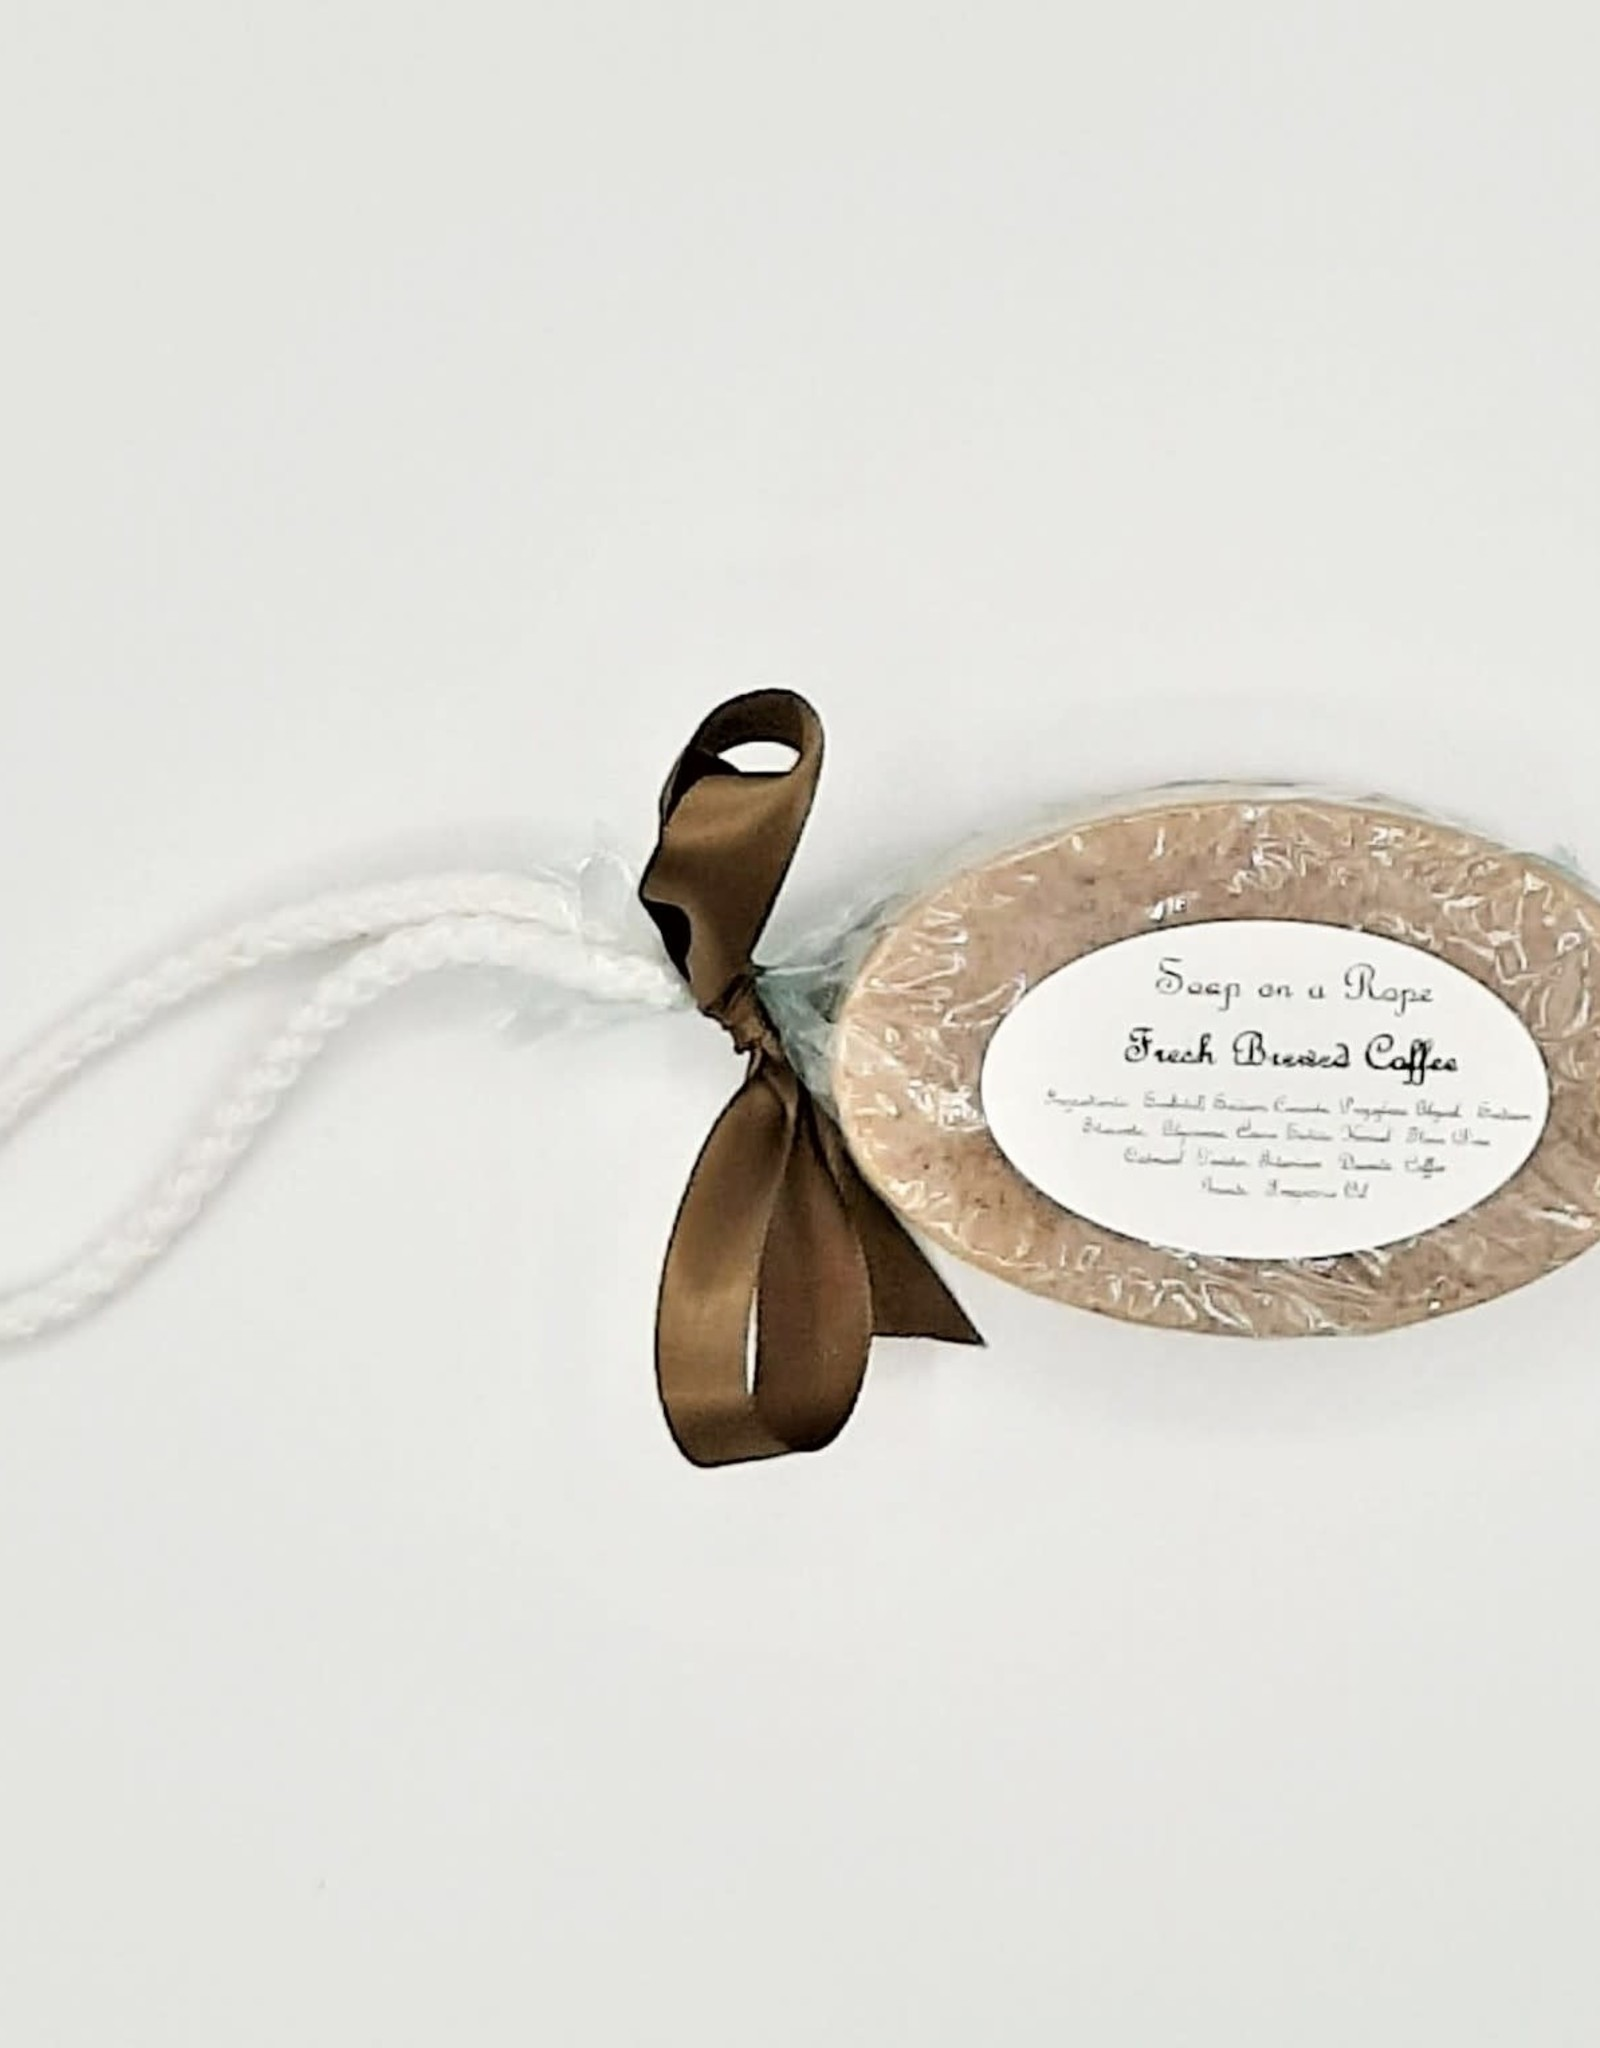 Tish's Bath & Suds Coffee Soap on a Rope